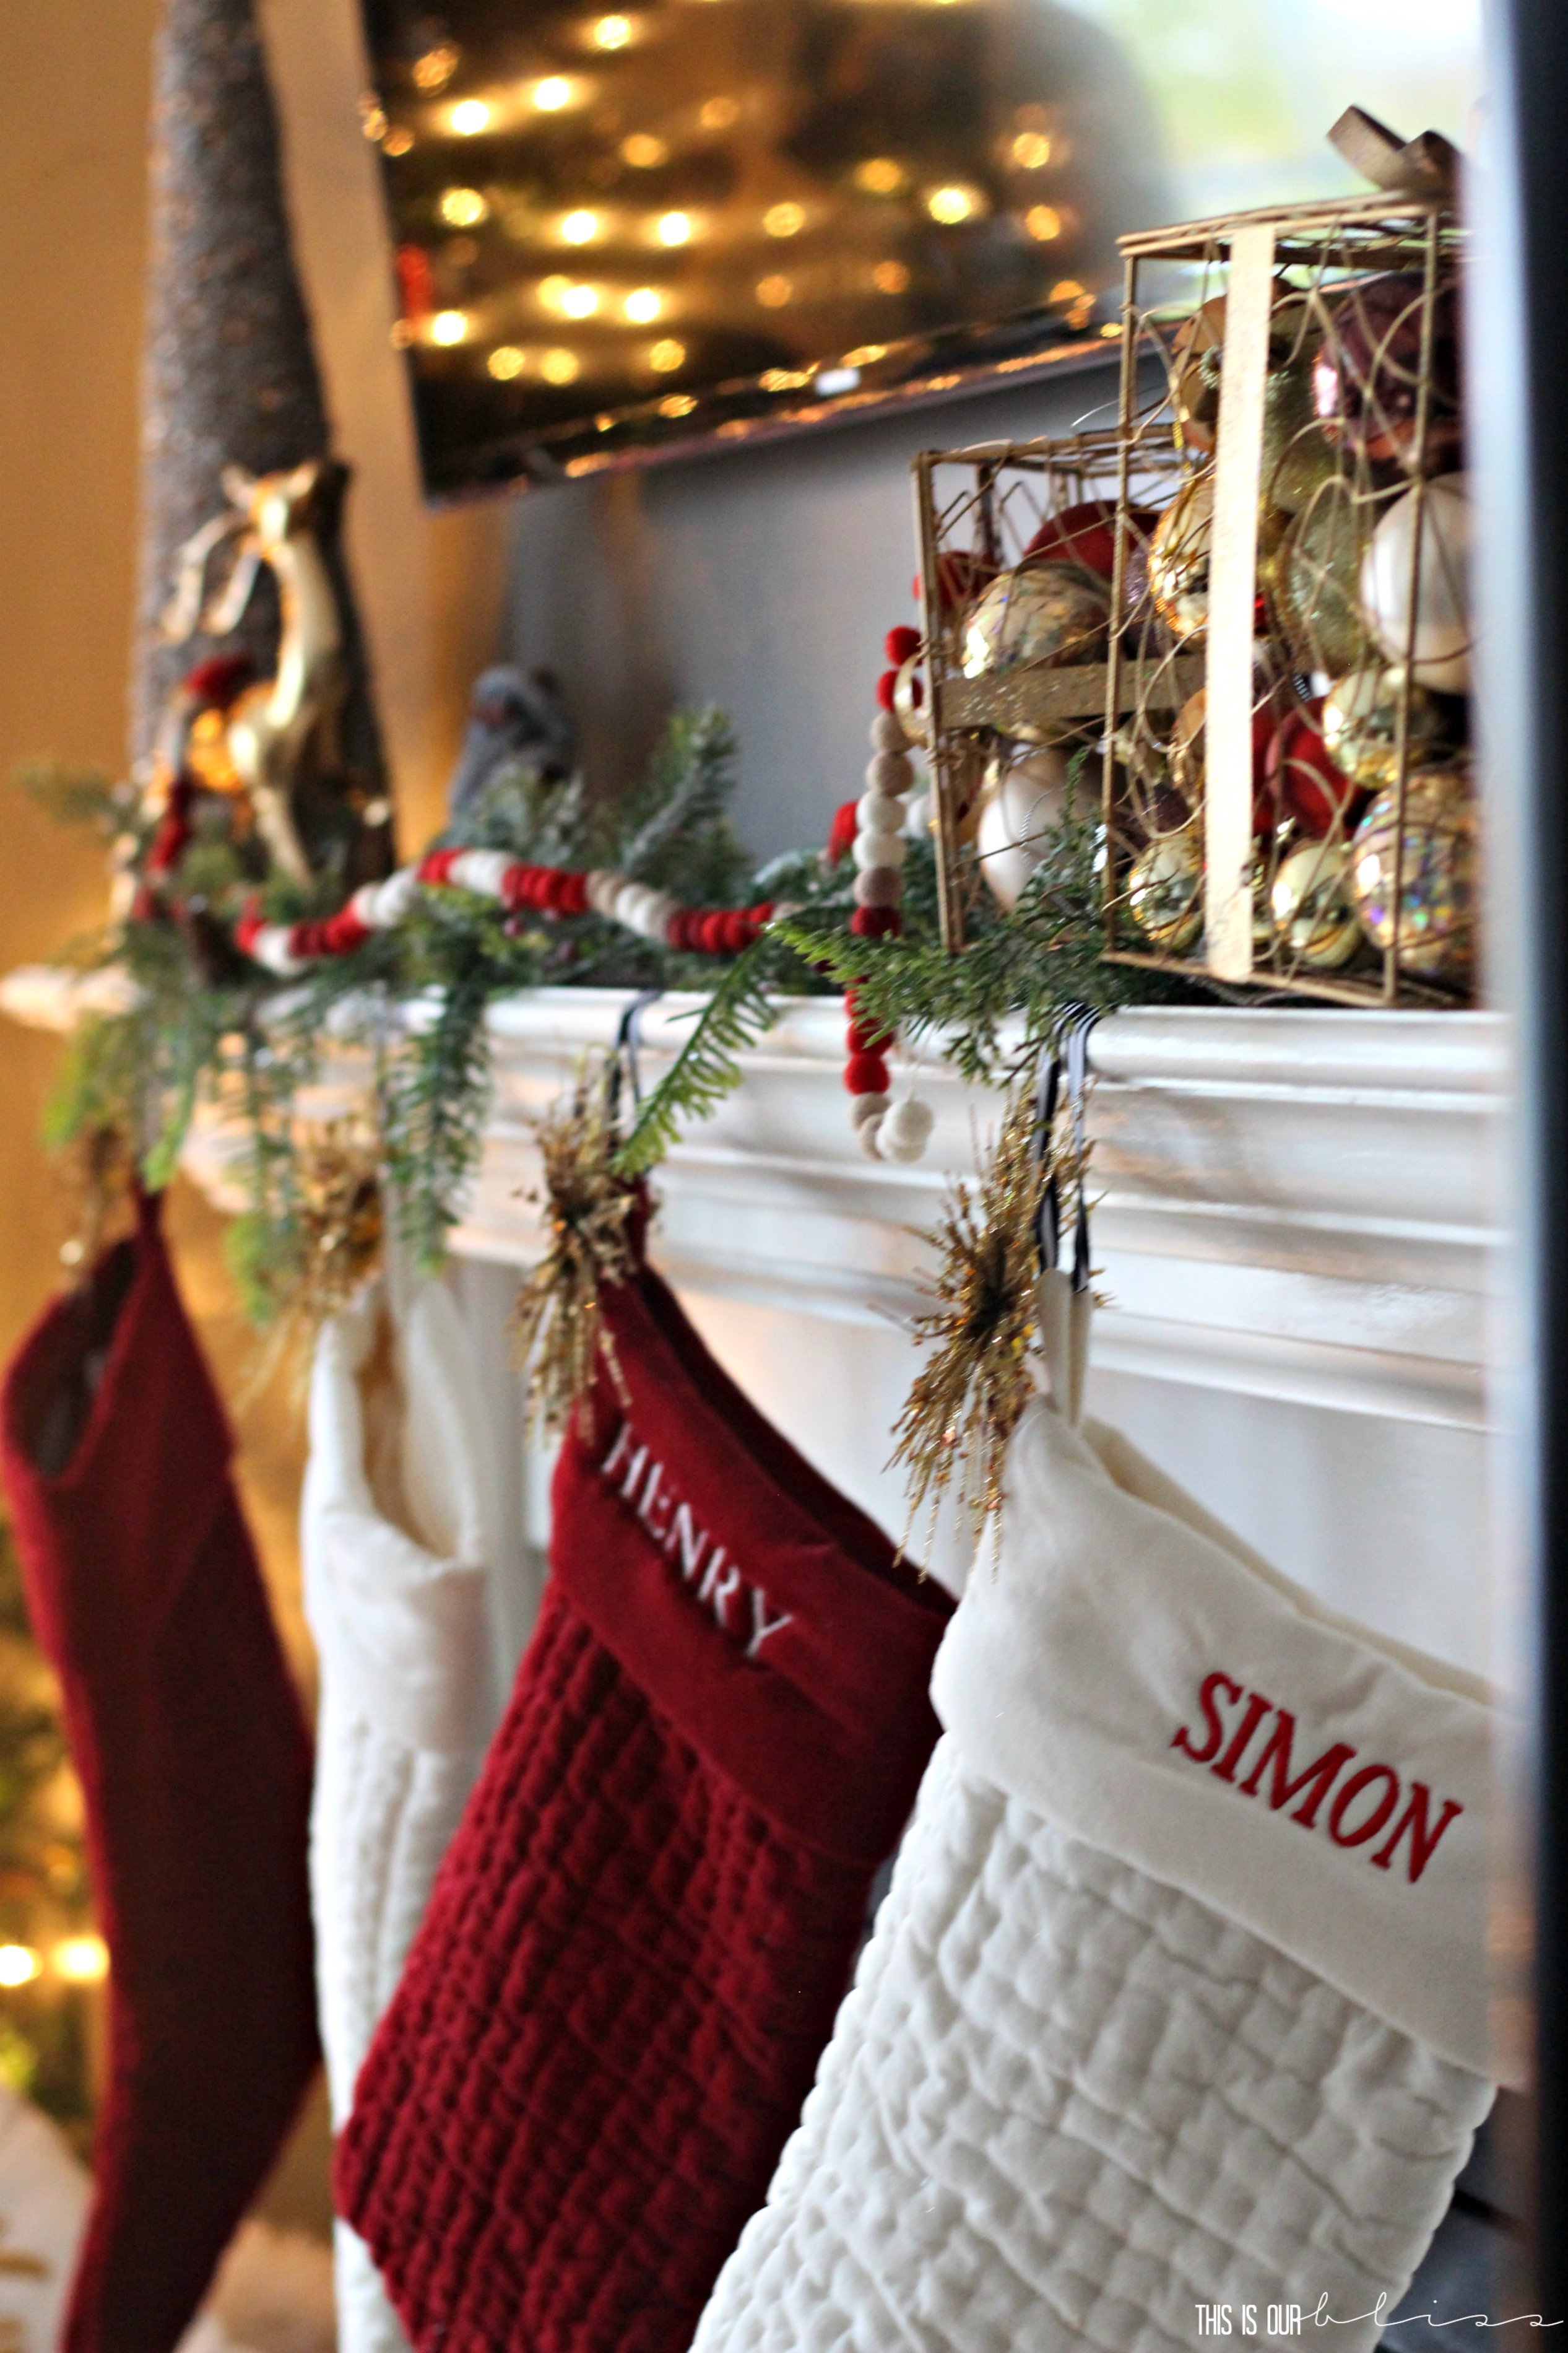 Uncategorized christmas decorations amp holiday decorations - Our Red And Ivory Stockings Were Hung Up With The Same Black And White Striped Ribbon But This Year I Added Gold Sunburst Ornaments To The Front Corner Of